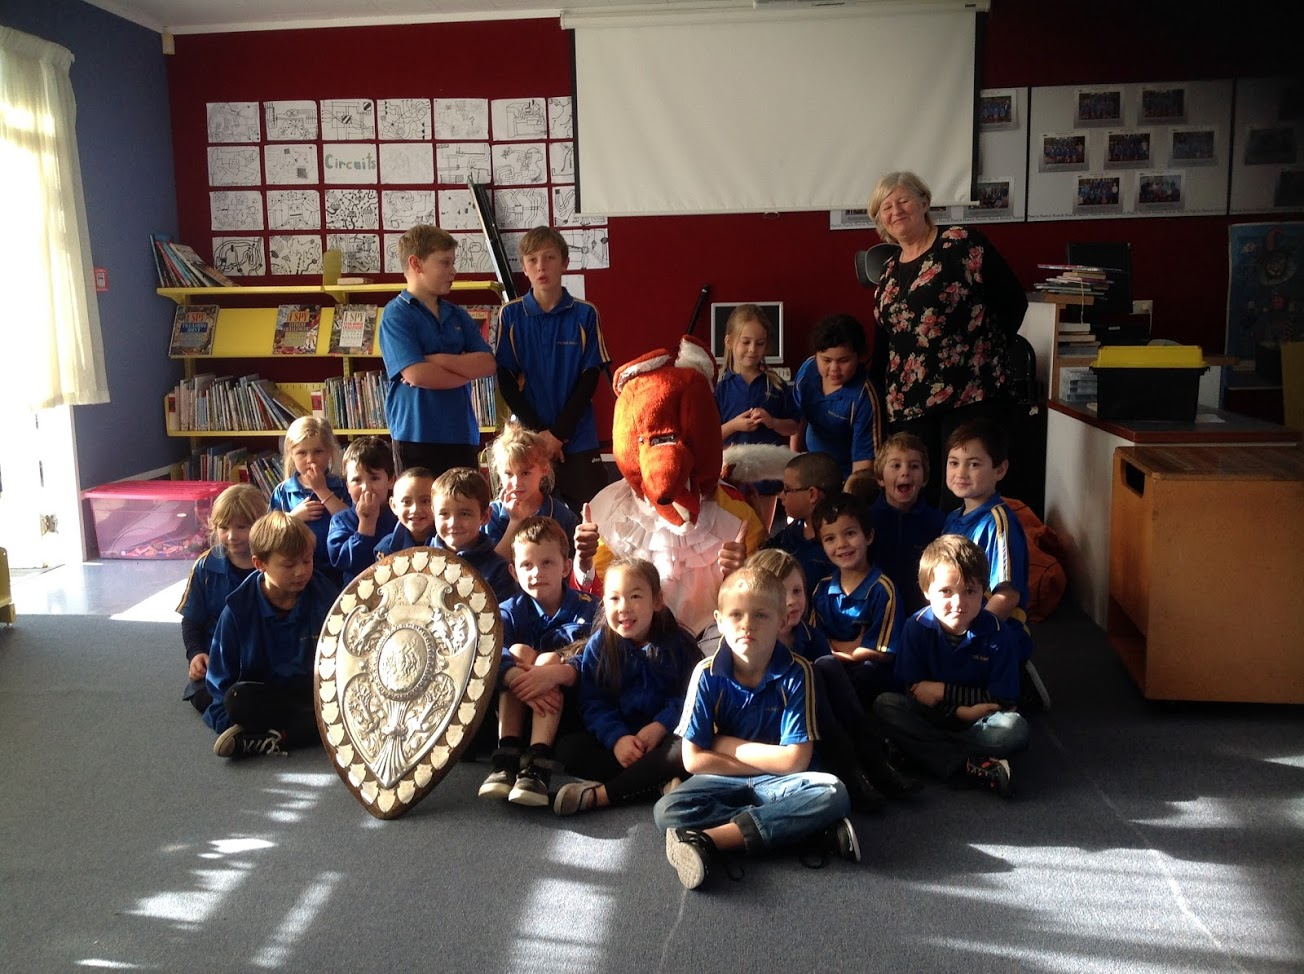 More Ranfurly Shield - Student Photos and Video